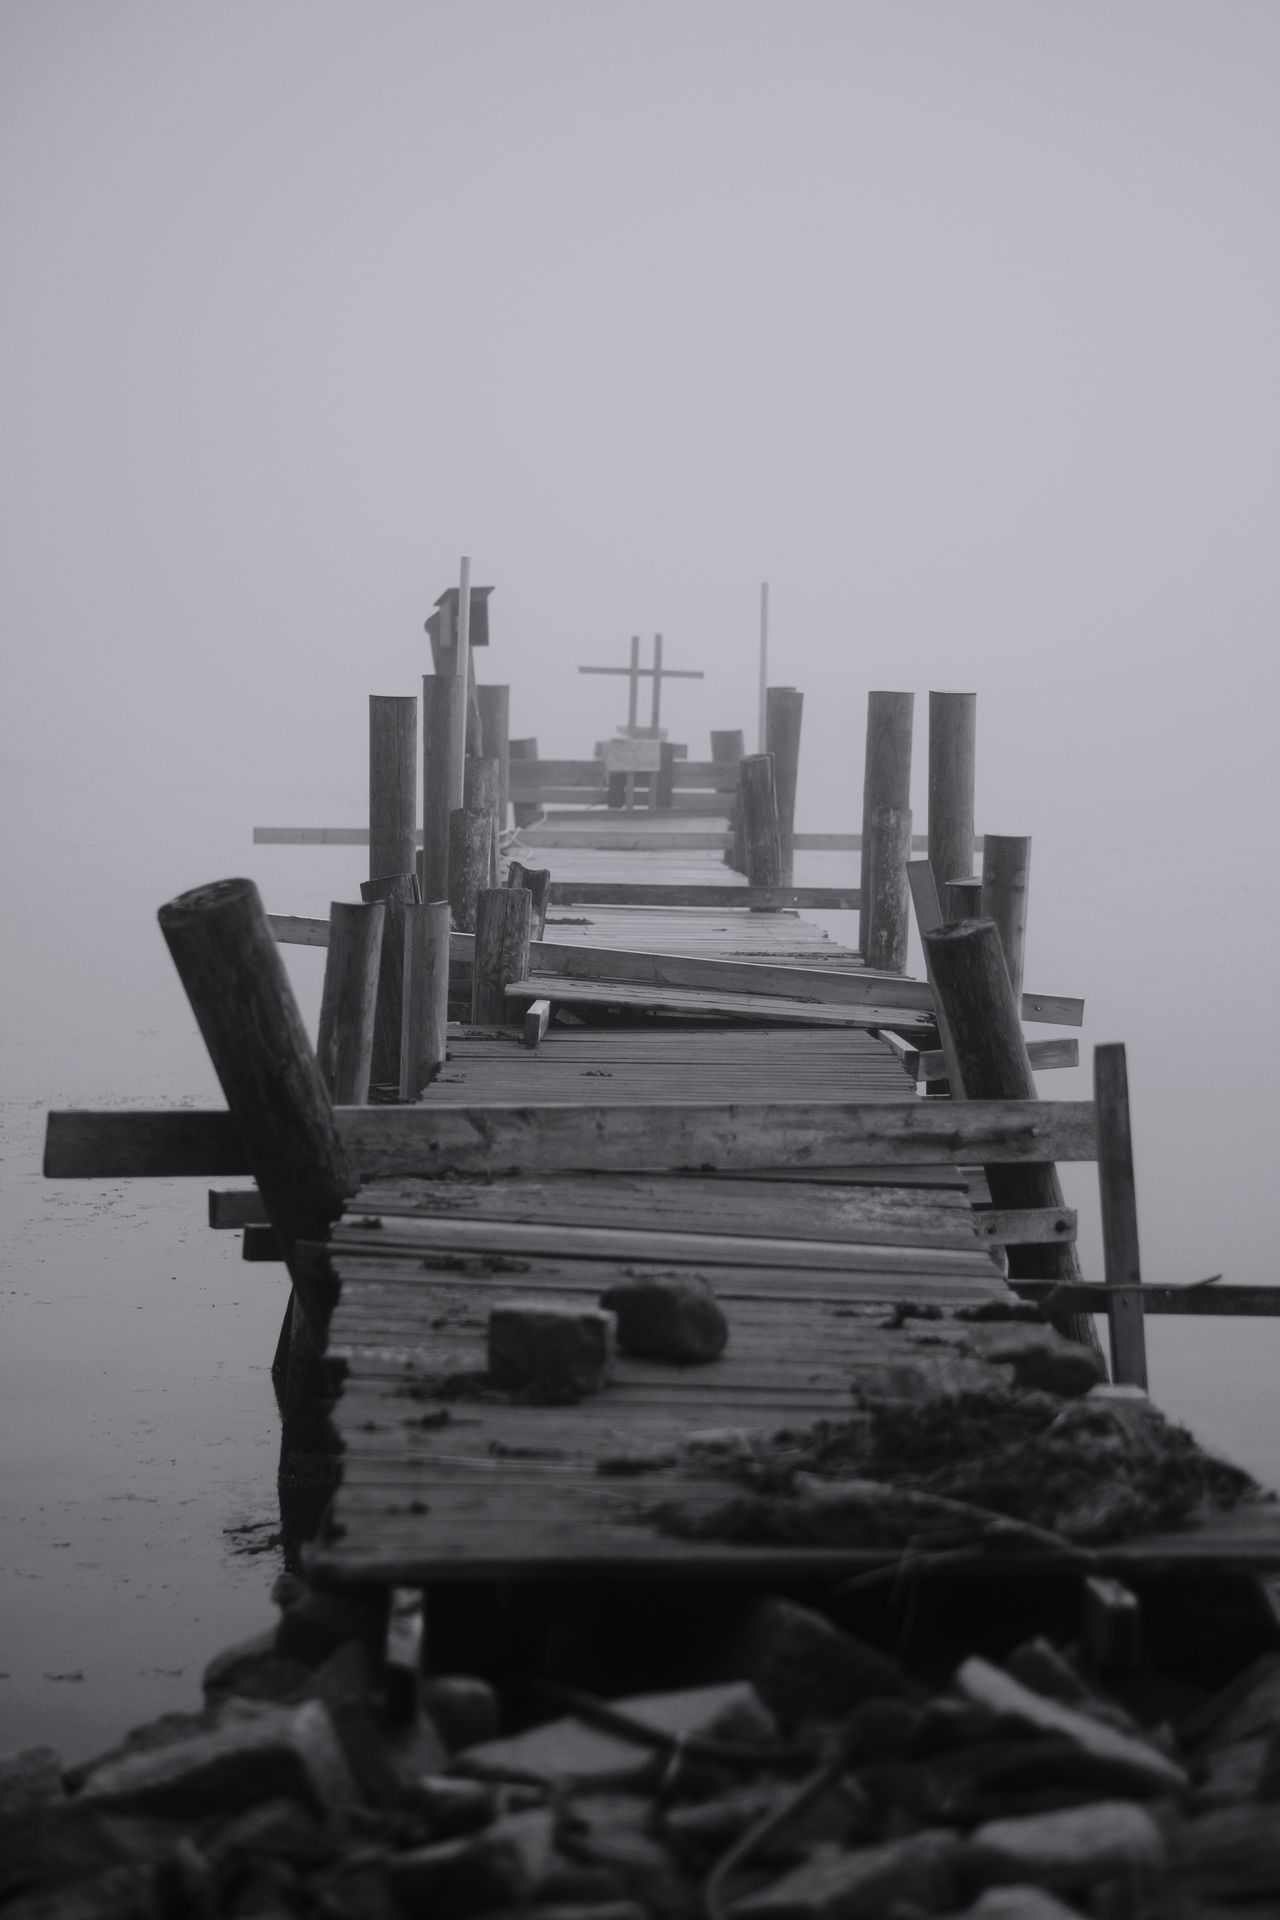 Foggy No People Built Structure Outdoors Foggy Day Fog Dimma Enjoying Life Taking Photos Eyeem Sweden January 2017 Eyeem Photography Blancoynegro EyeEm Best Shots - Black + White Sweden Monochrome Eyeem Black And White Eyeem Monochrome Monochrome Jetty Brygga FUJIFILM X-T2 Fujilove X-t2 XF56mmAPD Sweden Svartvitt